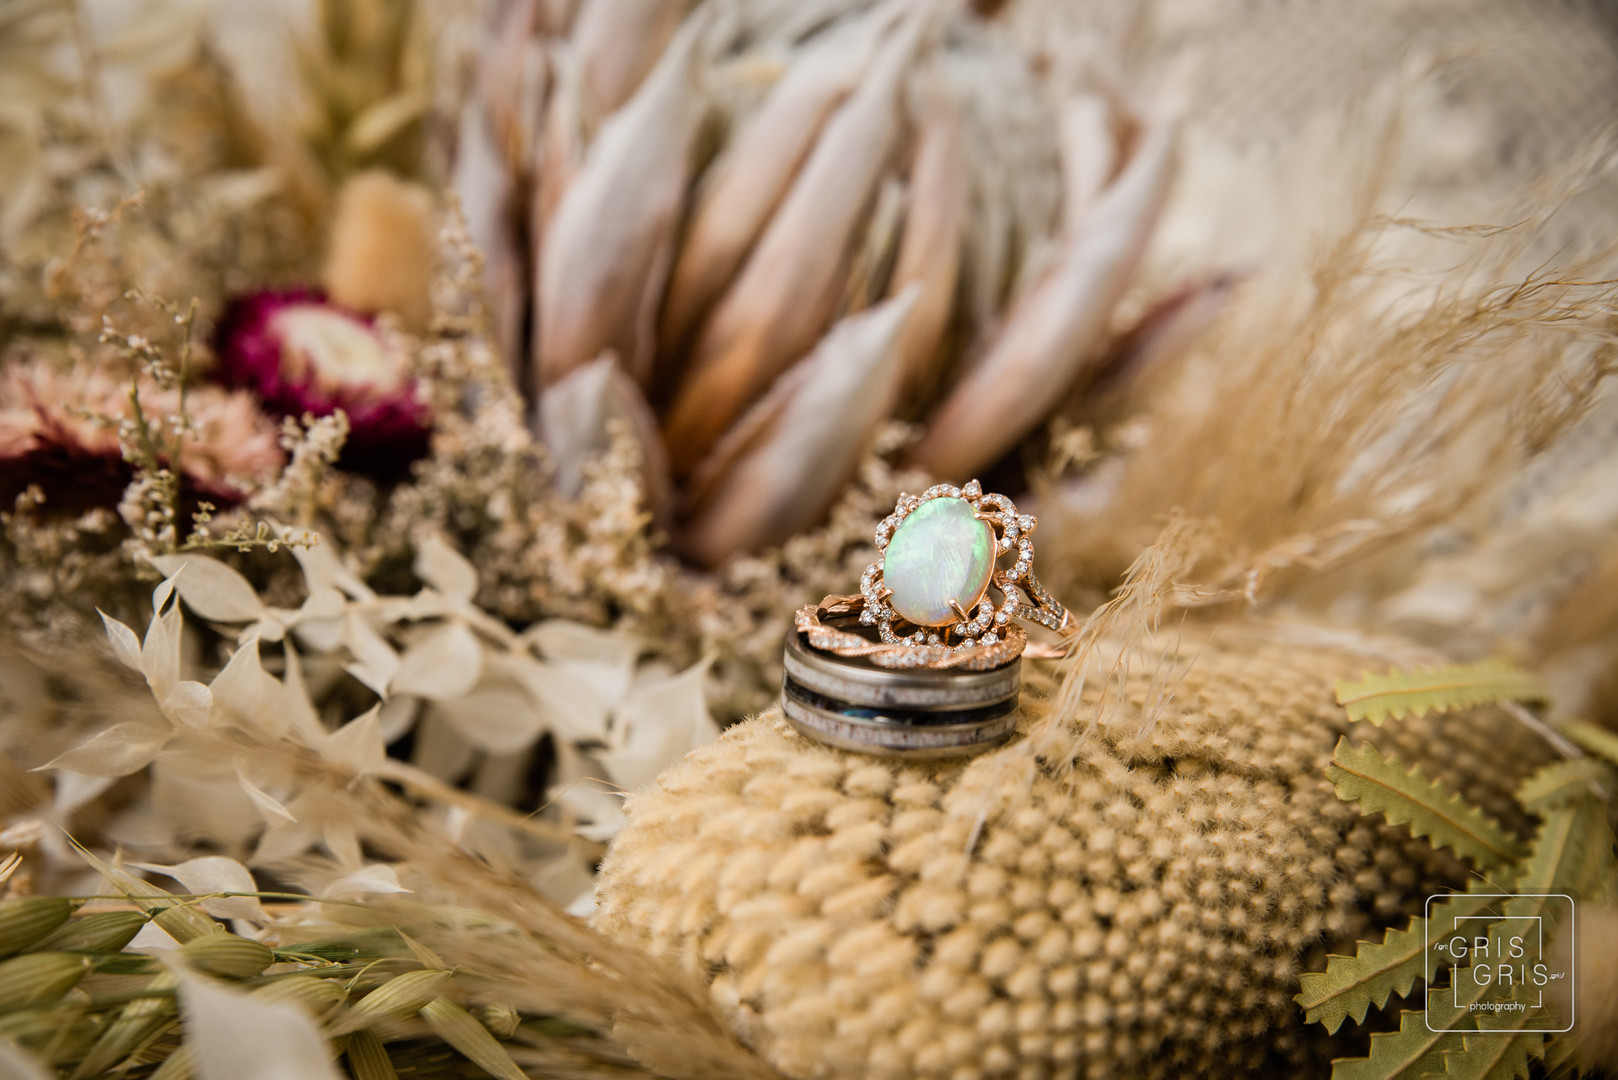 detail shot of wedding ring on dried flowers